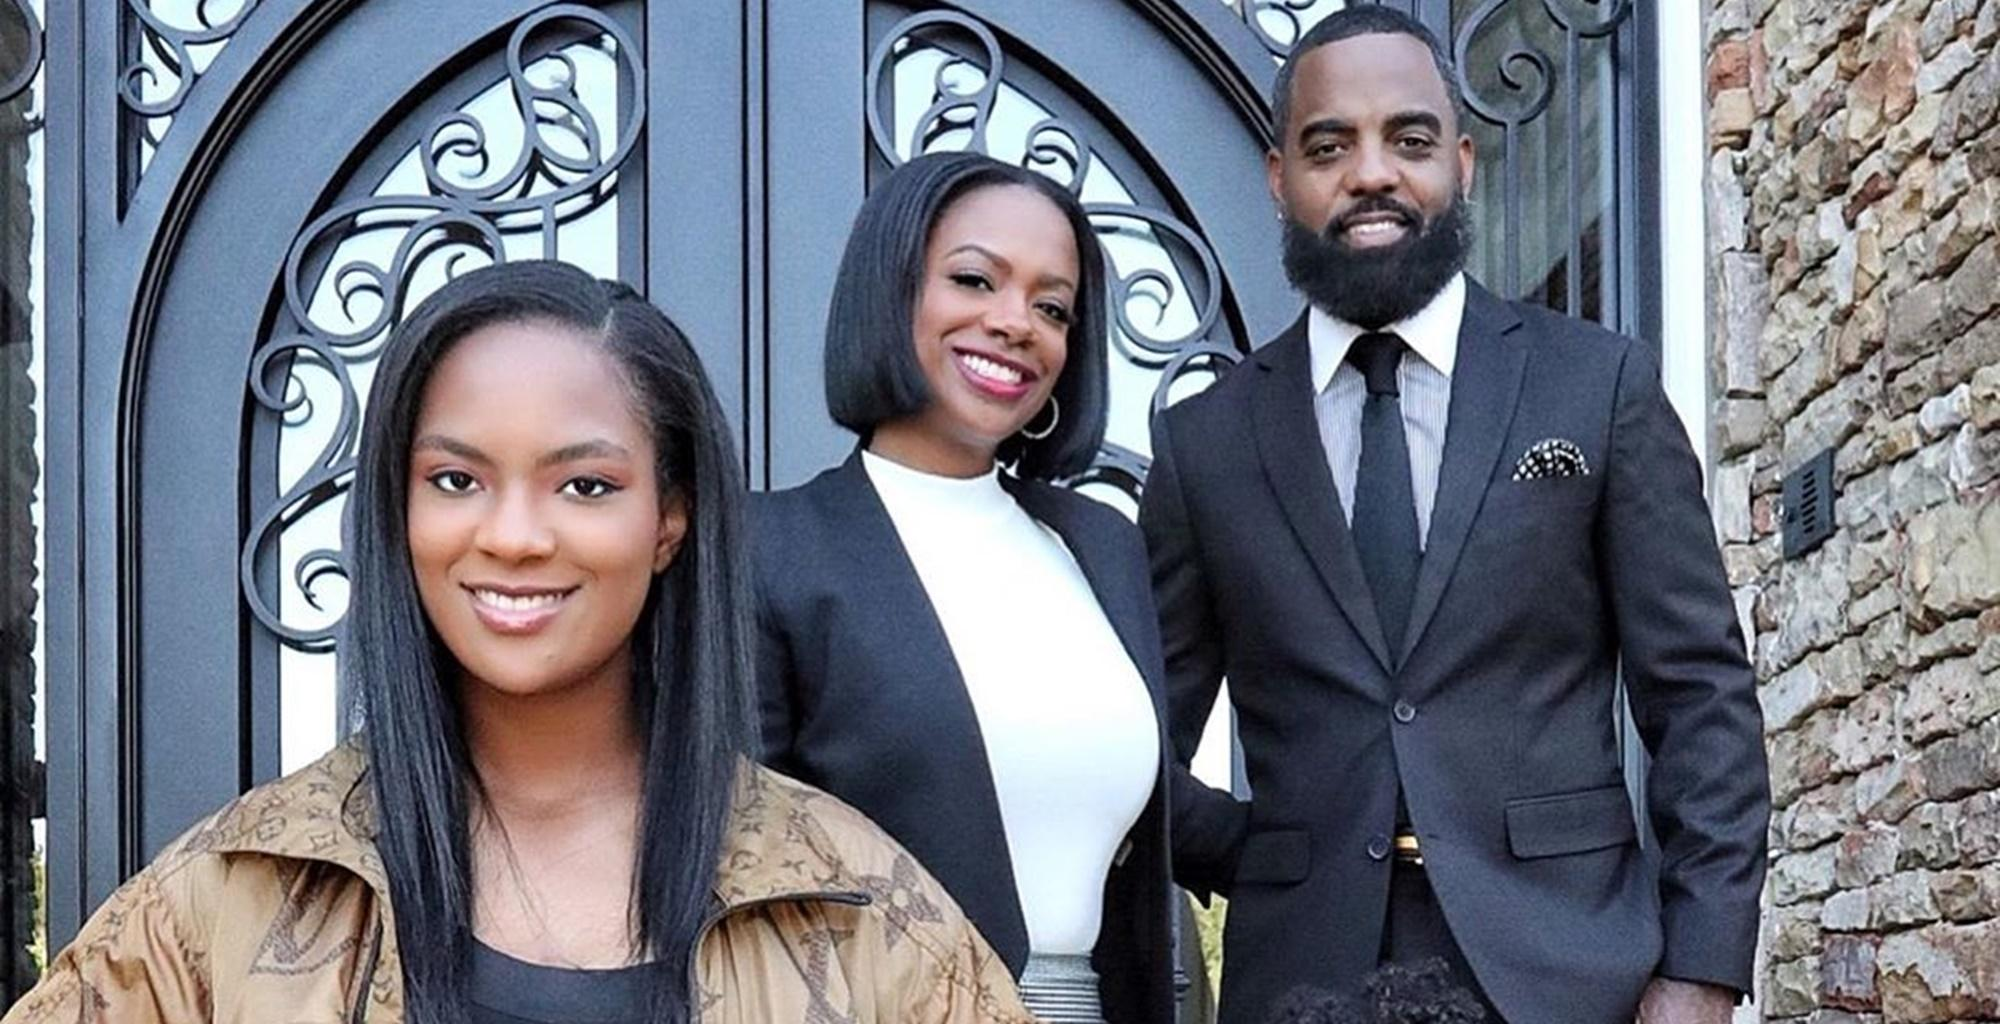 Kandi Burruss And Todd Tucker Share Picture From Their Family Trip With Their Beautiful Daughters Wearing Identical Outfits